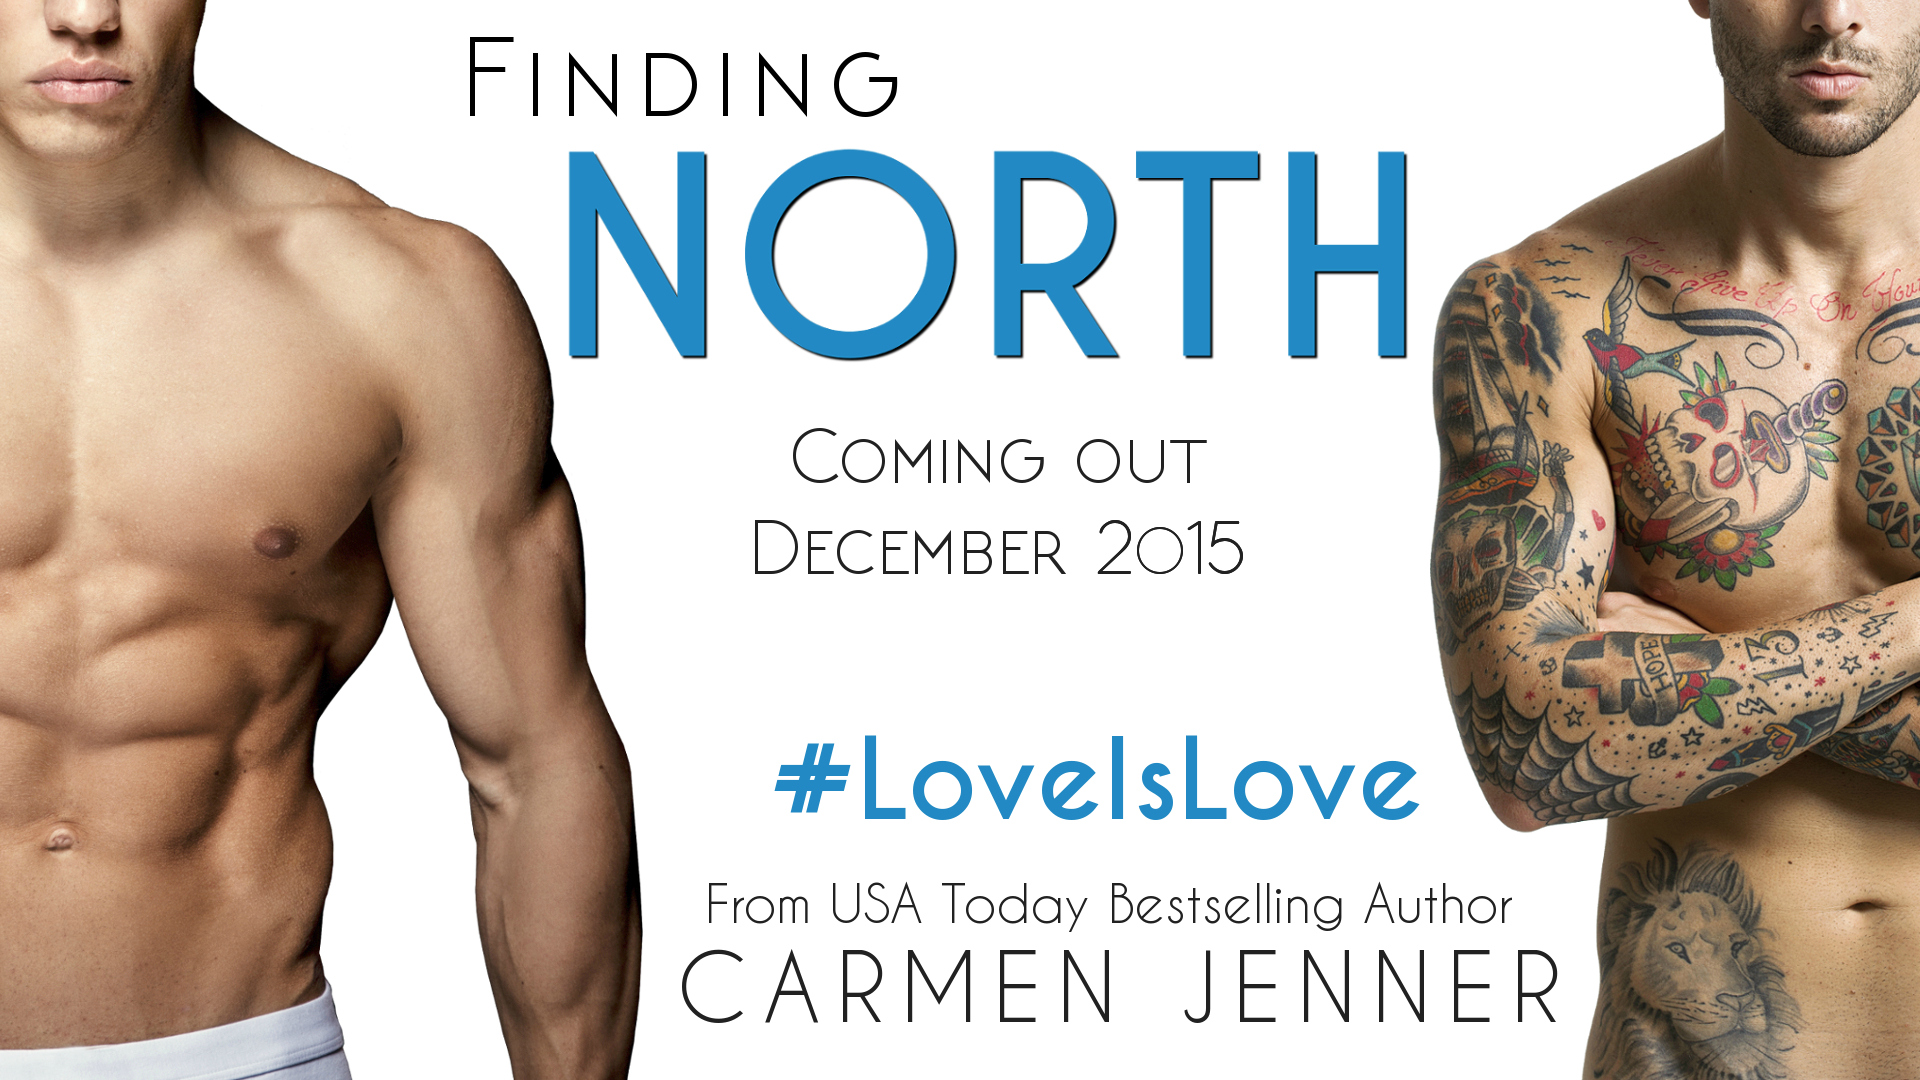 Finding North - LoveIsLove